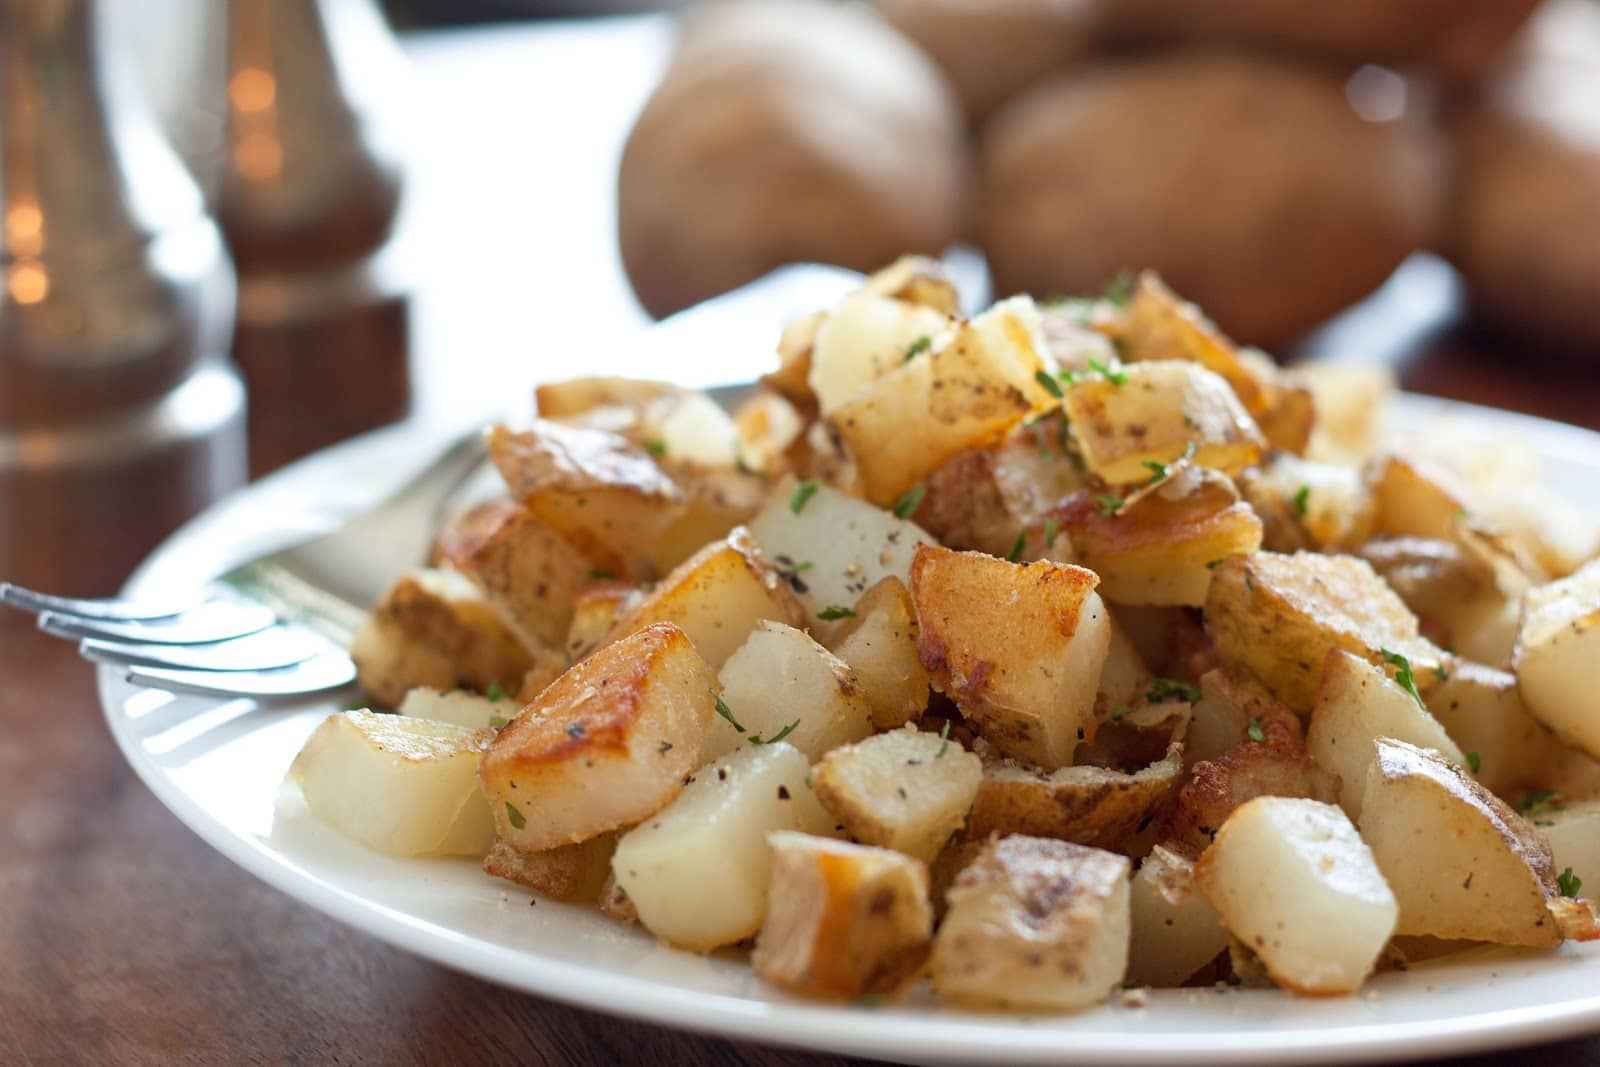 breakfast potatoes perfectly browned and crisp and shown on a serving plate.